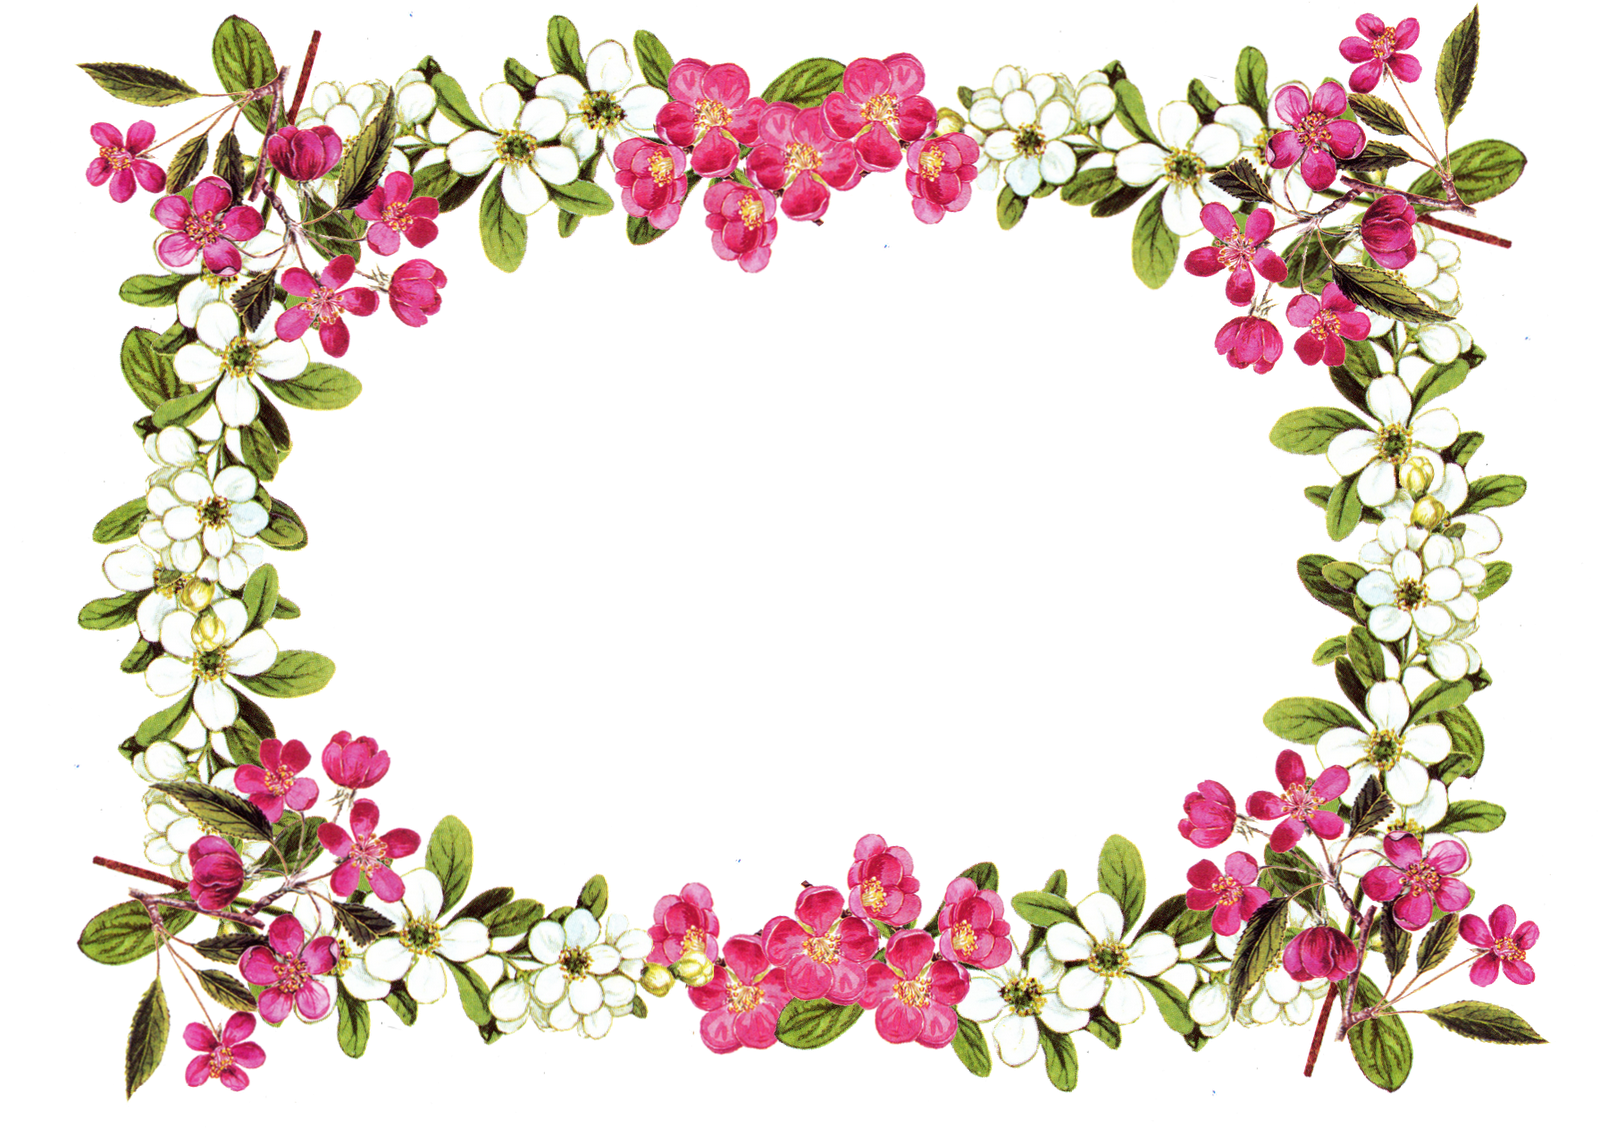 Flower chain clipart graphic Free Printable Clip Art Borders | free digital flower frame png and ... graphic